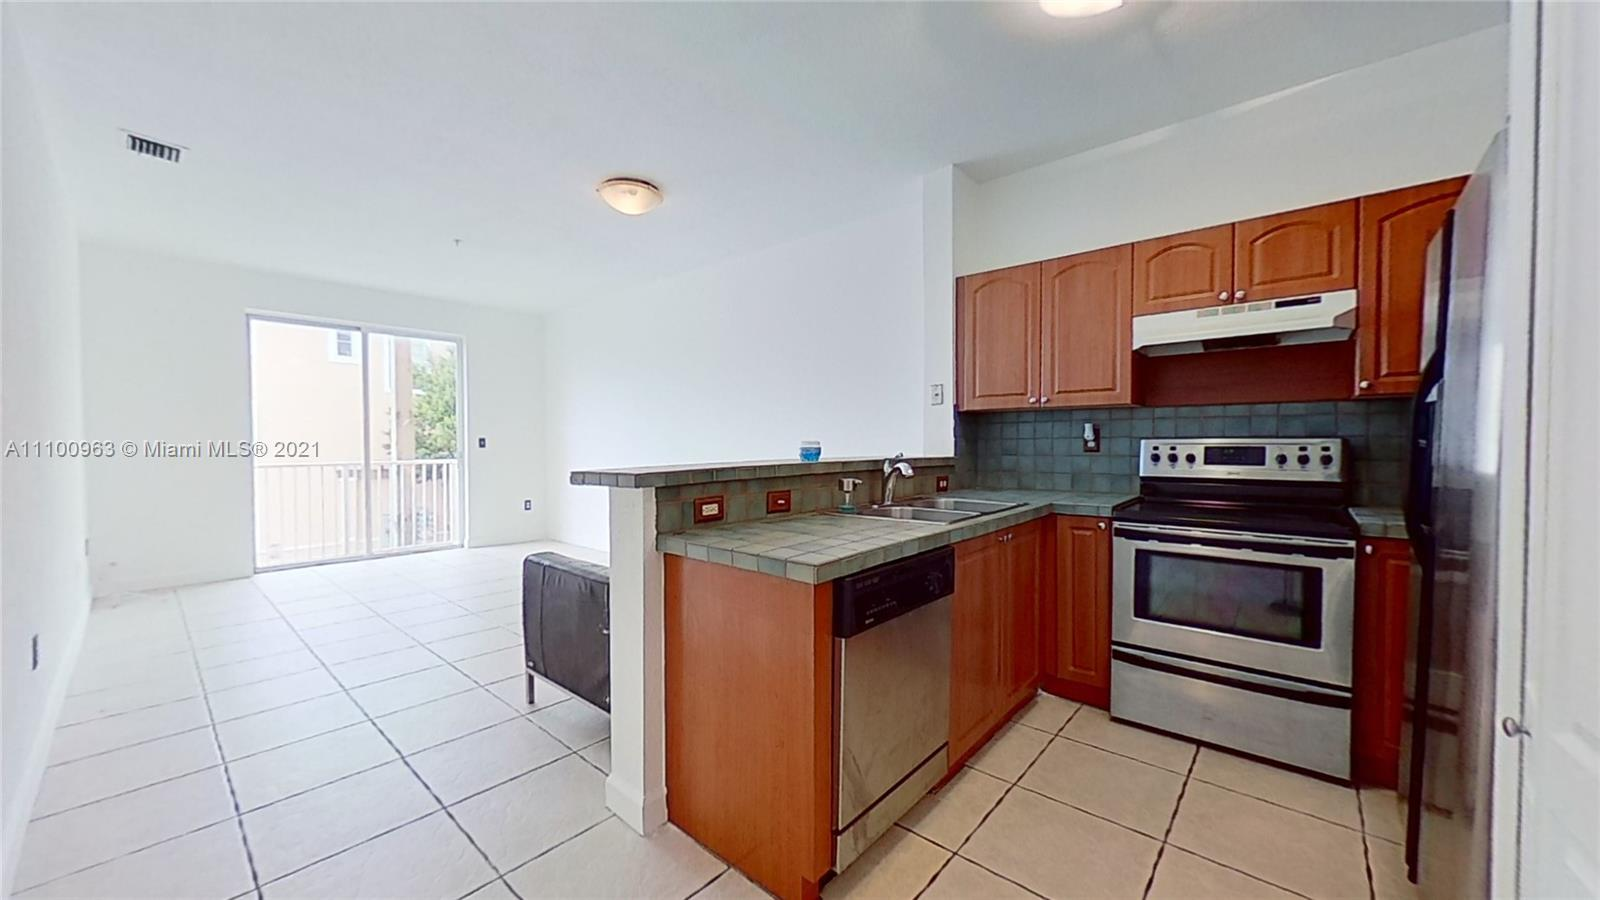 SHOMA HOMES AT COUNTRY CL Condo,For Sale,SHOMA HOMES AT COUNTRY CL Brickell,realty,broker,condos near me